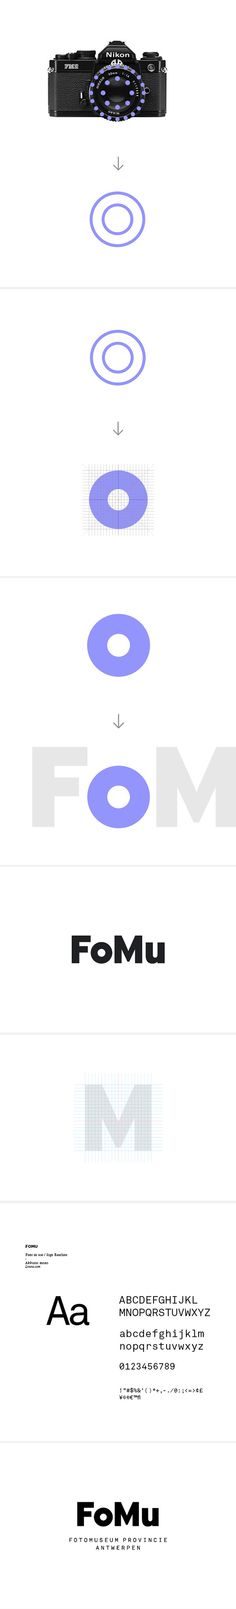 FoMu - Museum of photography - Antwerp on Behance